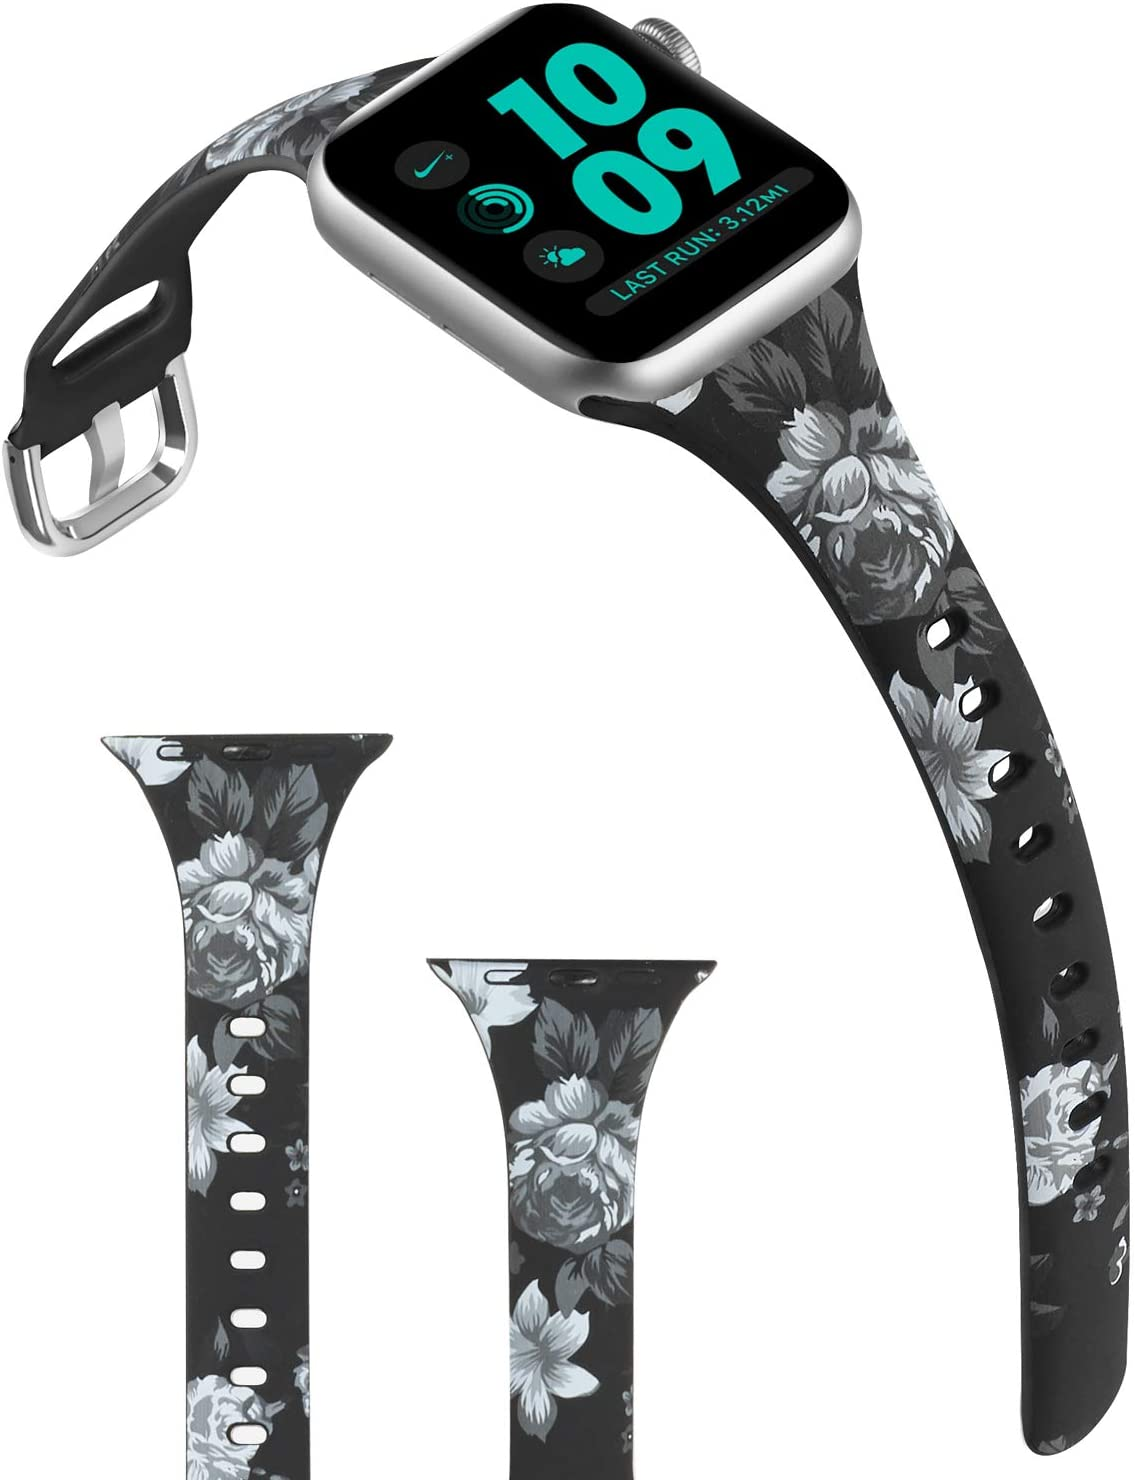 ACBEE Compatible with Apple Watch Band 38mm 40mm 42mm 44mm for Women Small Large, Slim Narrow Floral Bands for Apple Watch Series 5/Series 4/Series 3/Series 2/Series 1 (Gray Flowers, 42mm/44mm)